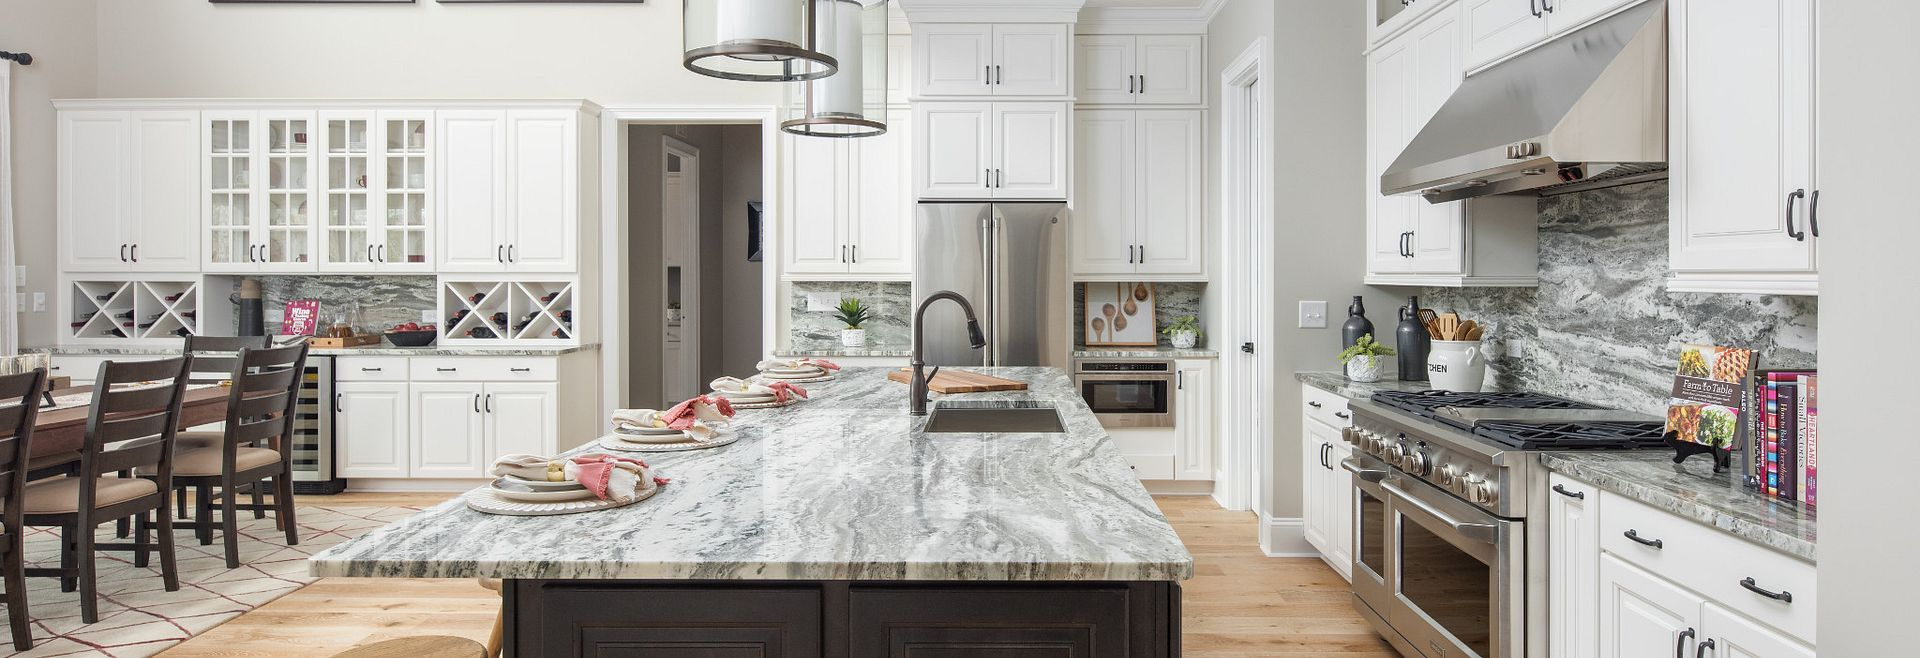 Kitchen featured in the Hadley By Shea Homes in Charlotte, NC